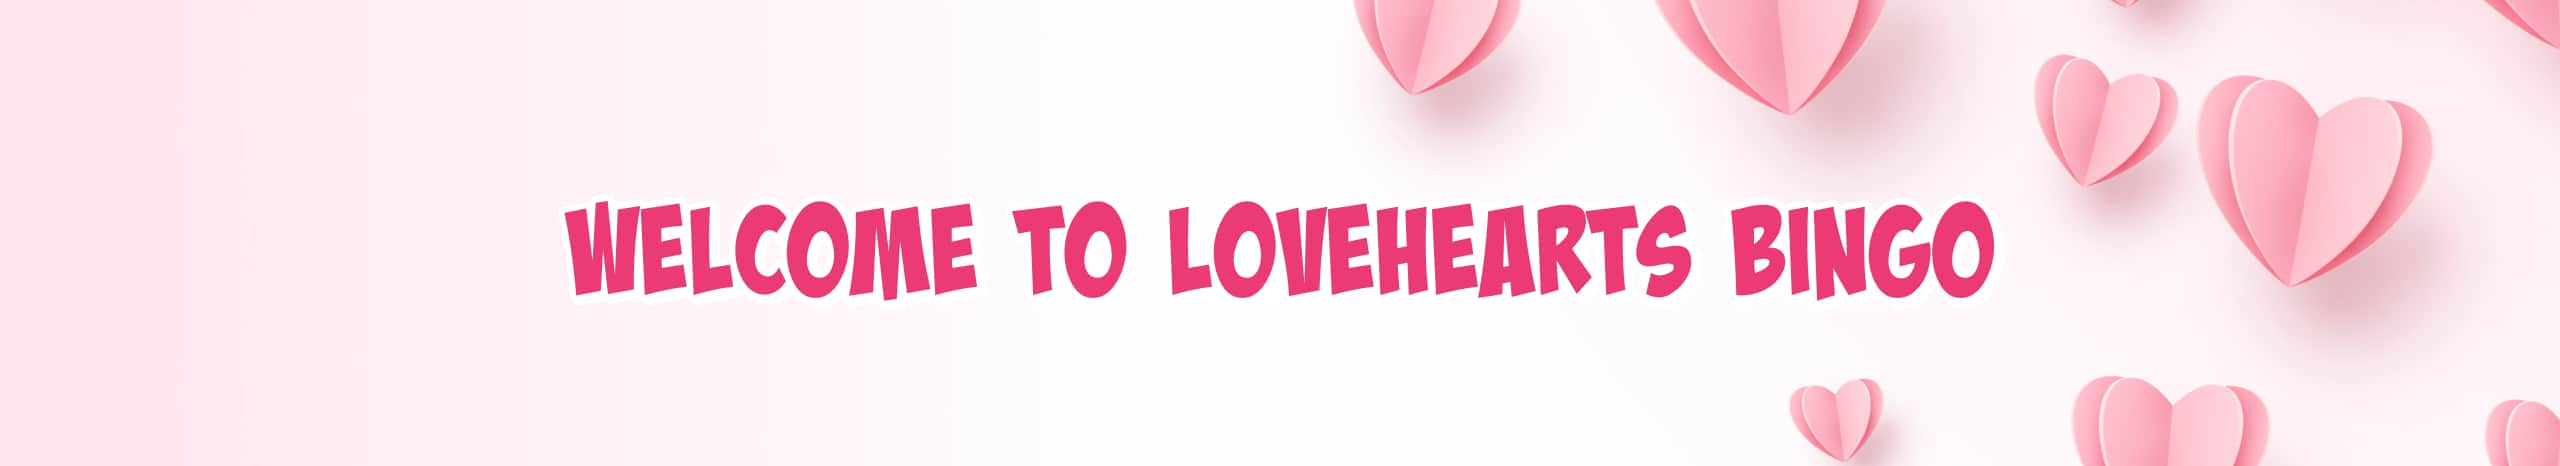 Love Hearts Bingo offers players entertaining bingo & online slot promotions on a weekly & monthly basis. Get more details here!